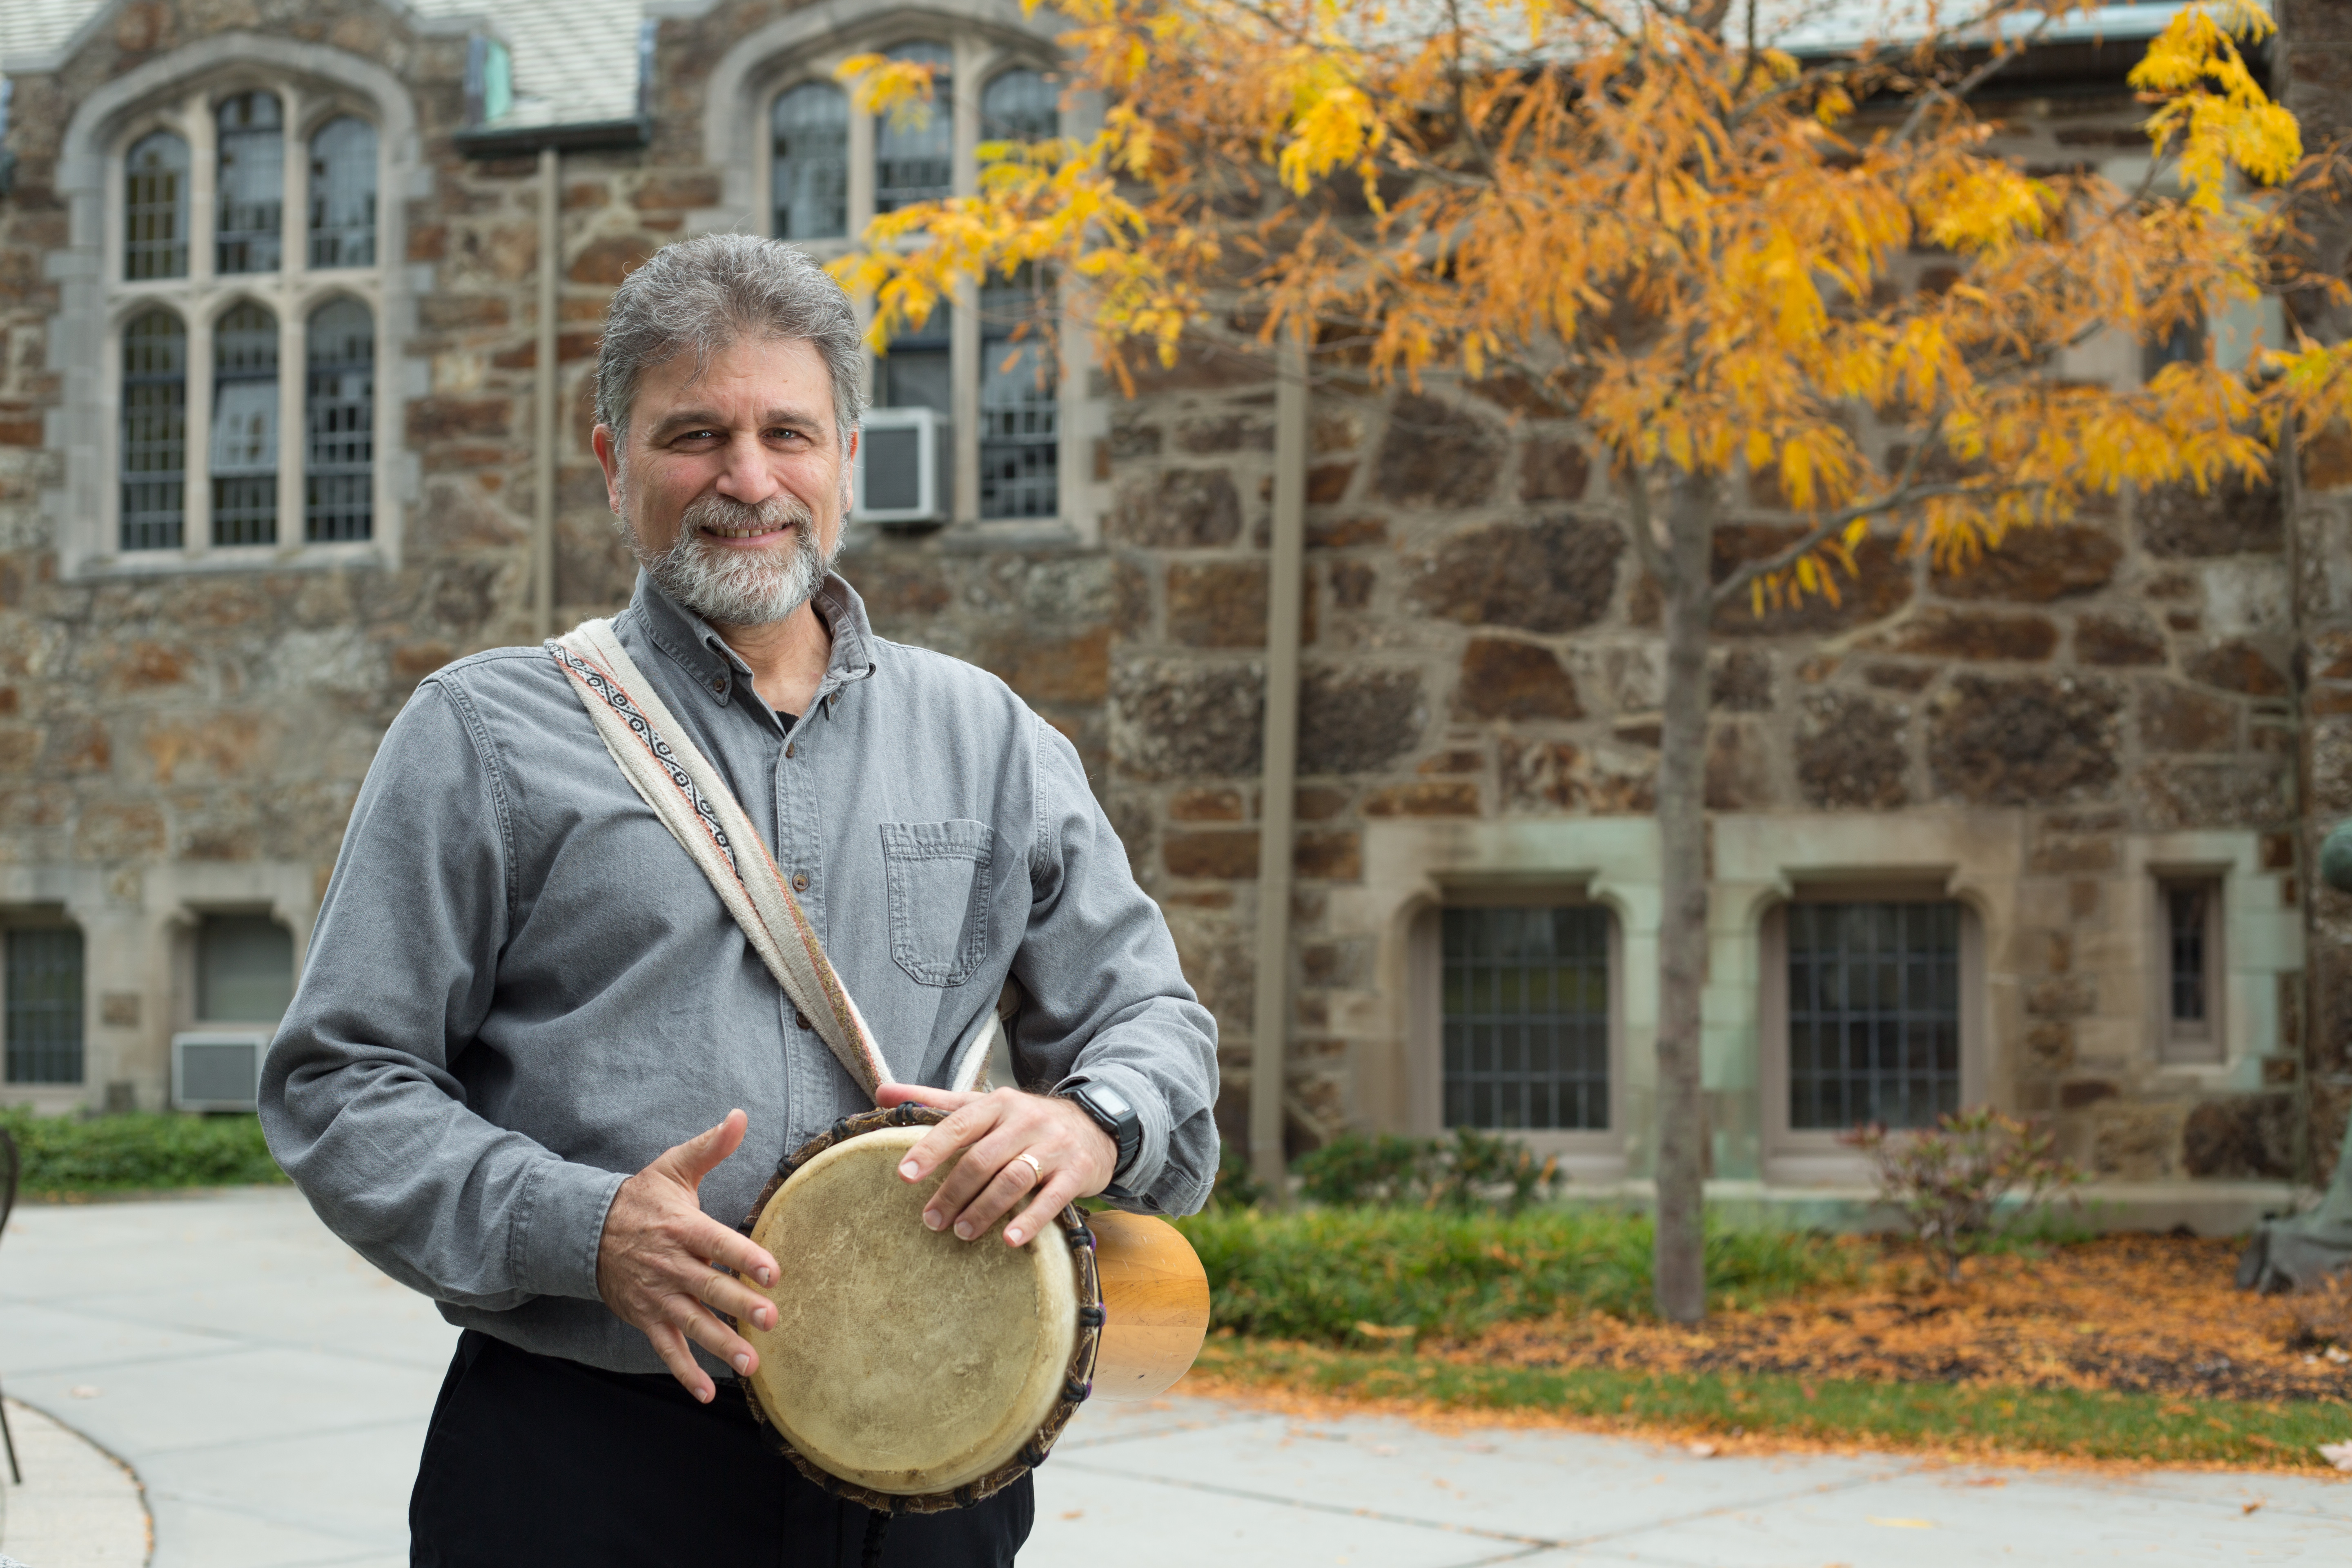 Kossak holds a drum on campus.